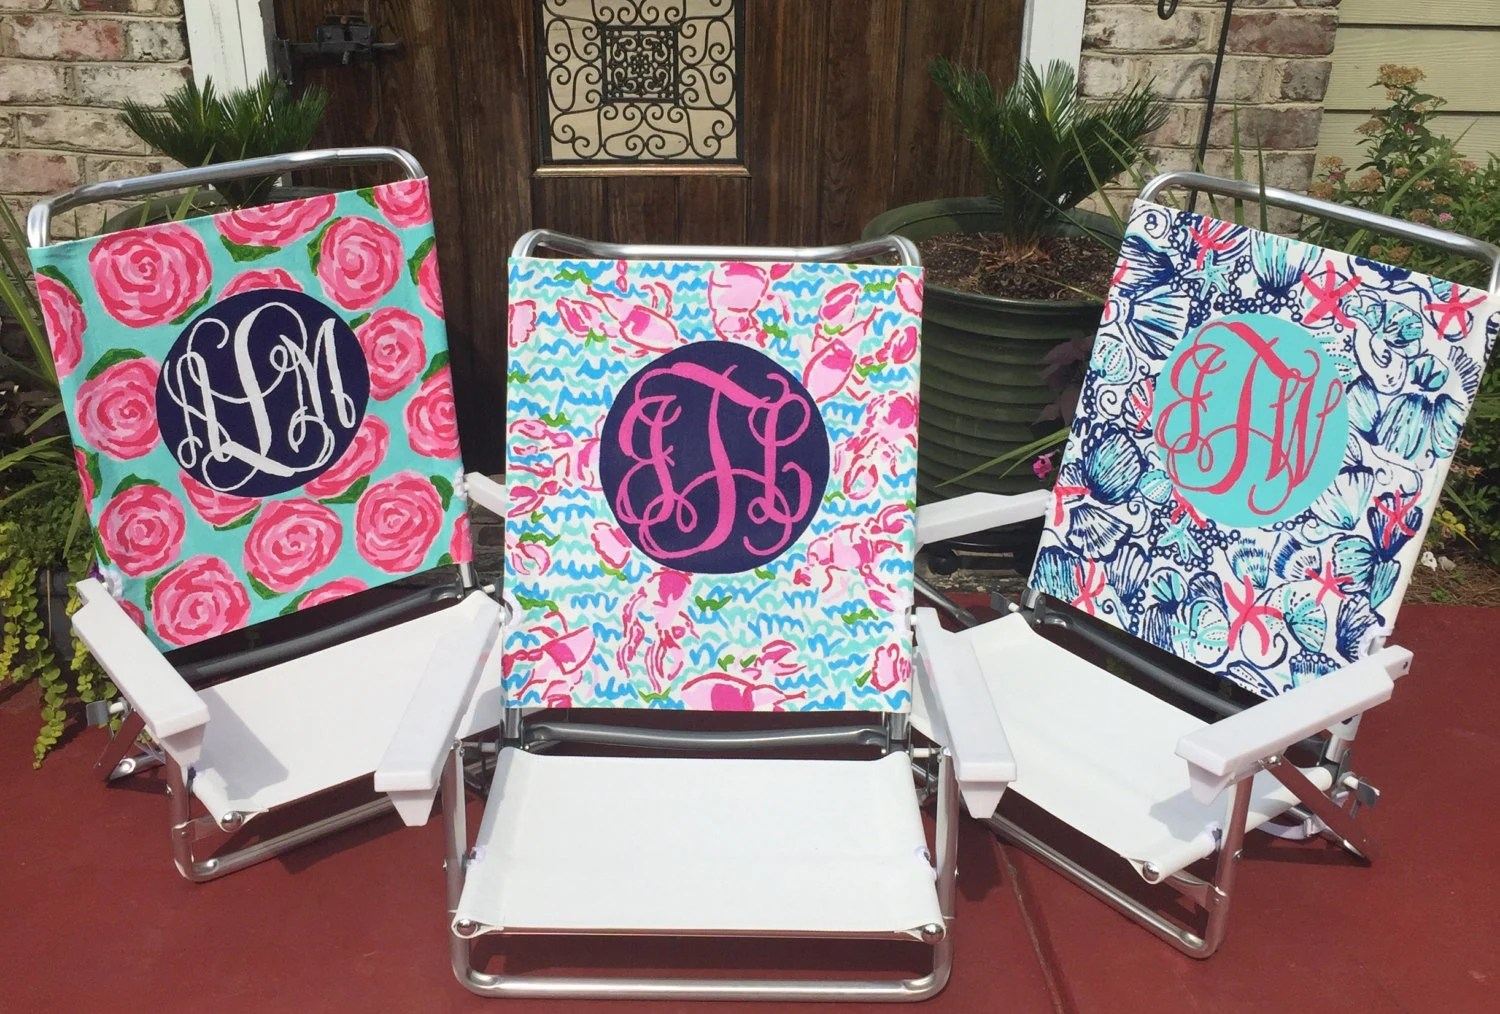 lilly pulitzer chair vibrating cushion hand painted inspired monogram beach